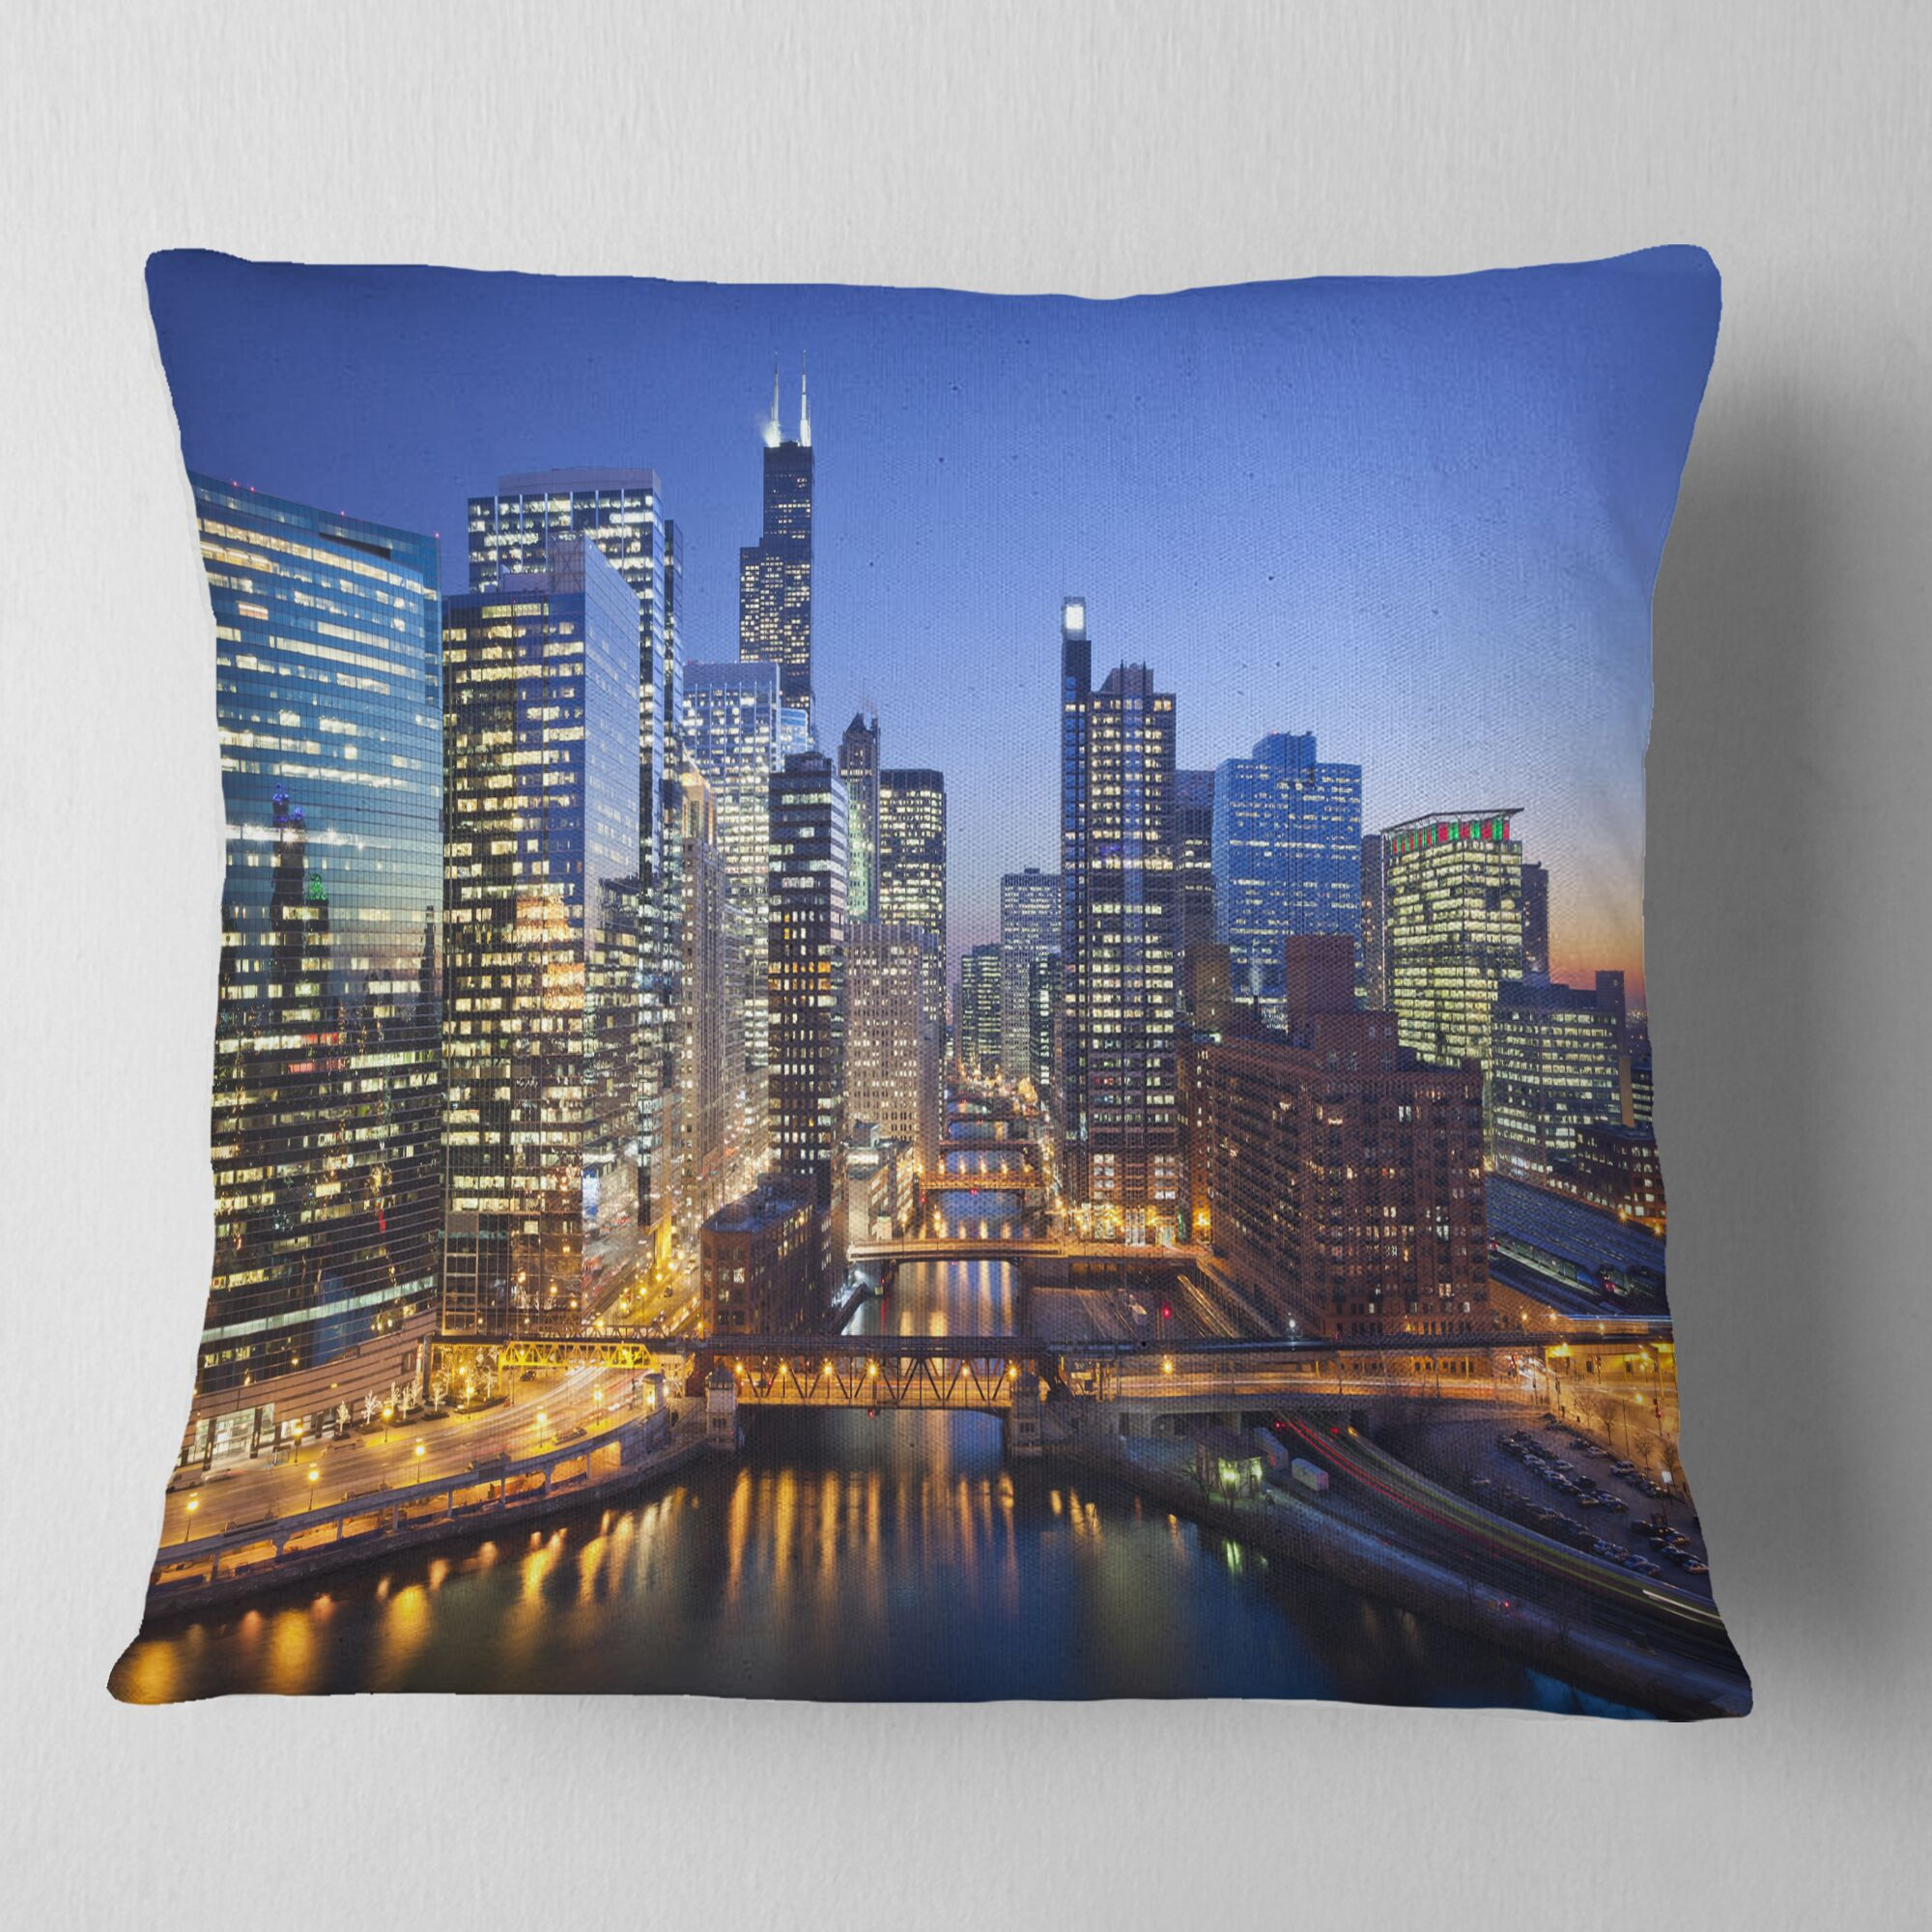 Chicago River with Bridges at Sunset Cityscape Pillow Size: 26